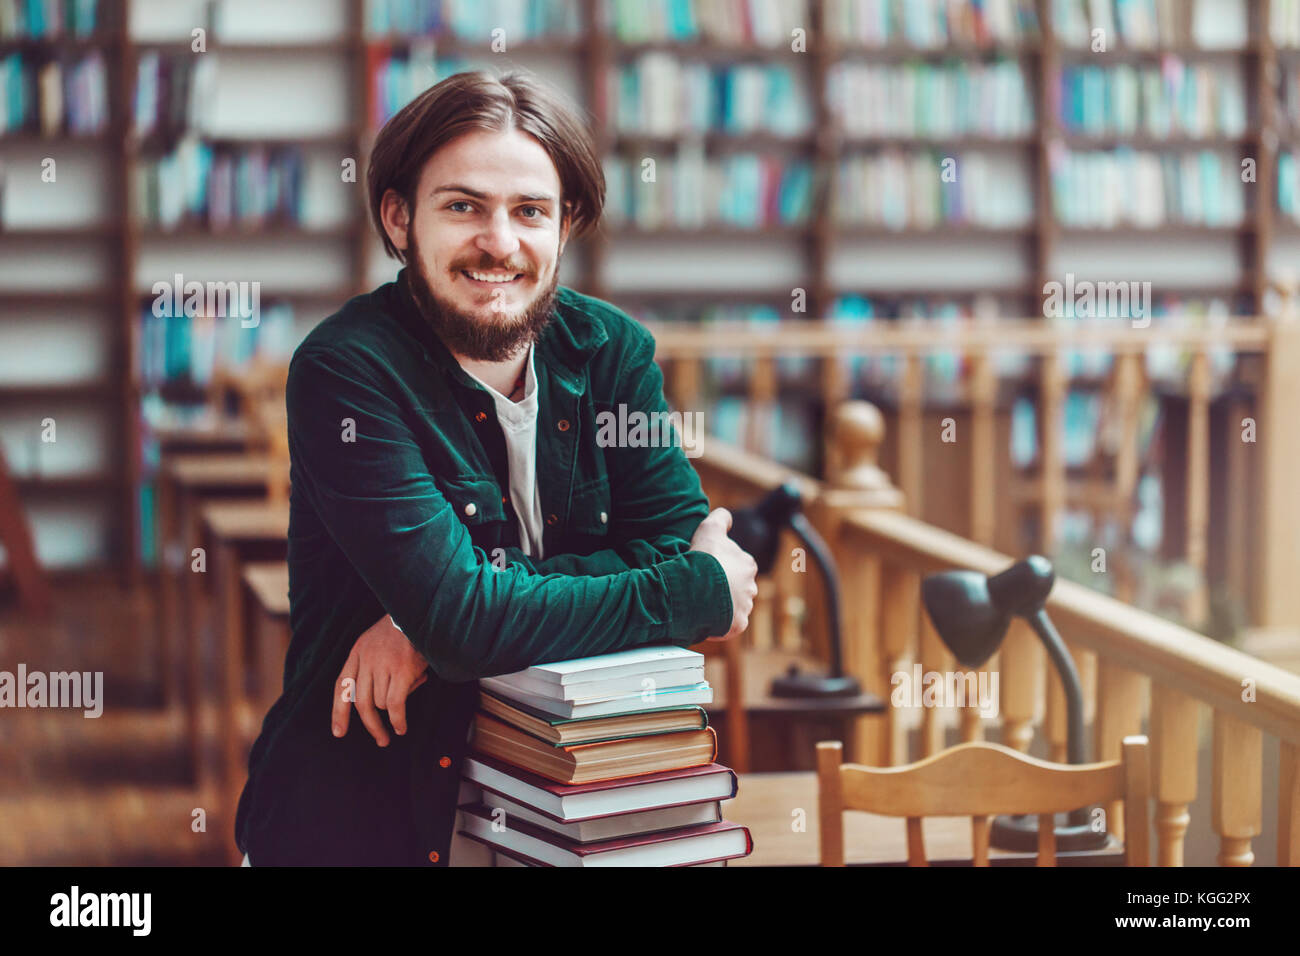 Studying Process in Library - Stock Image